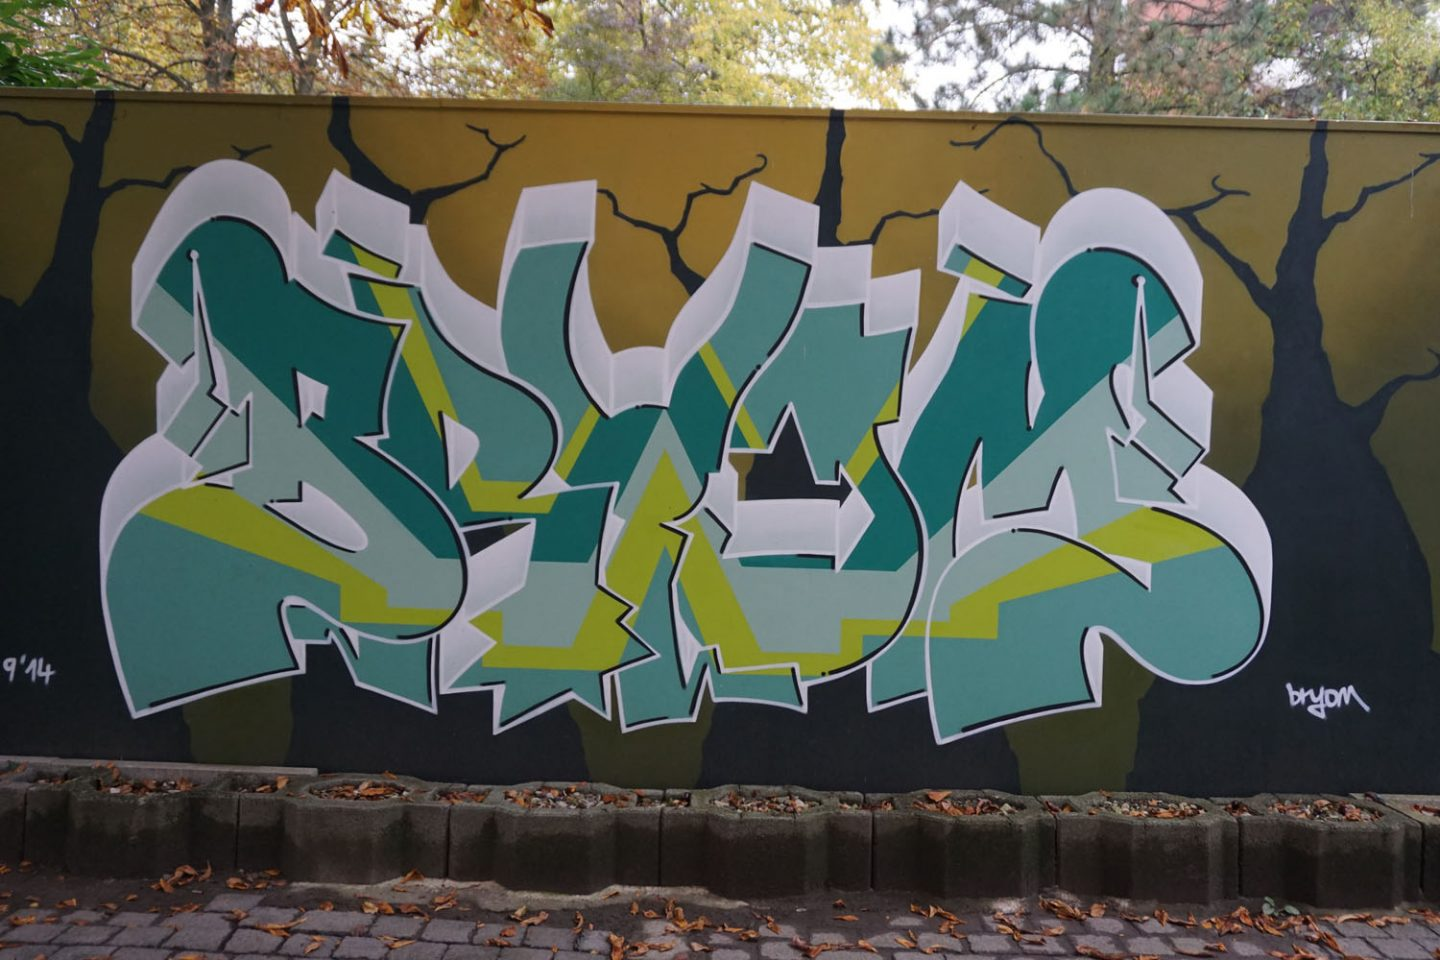 Hannover: Walls and walls of style